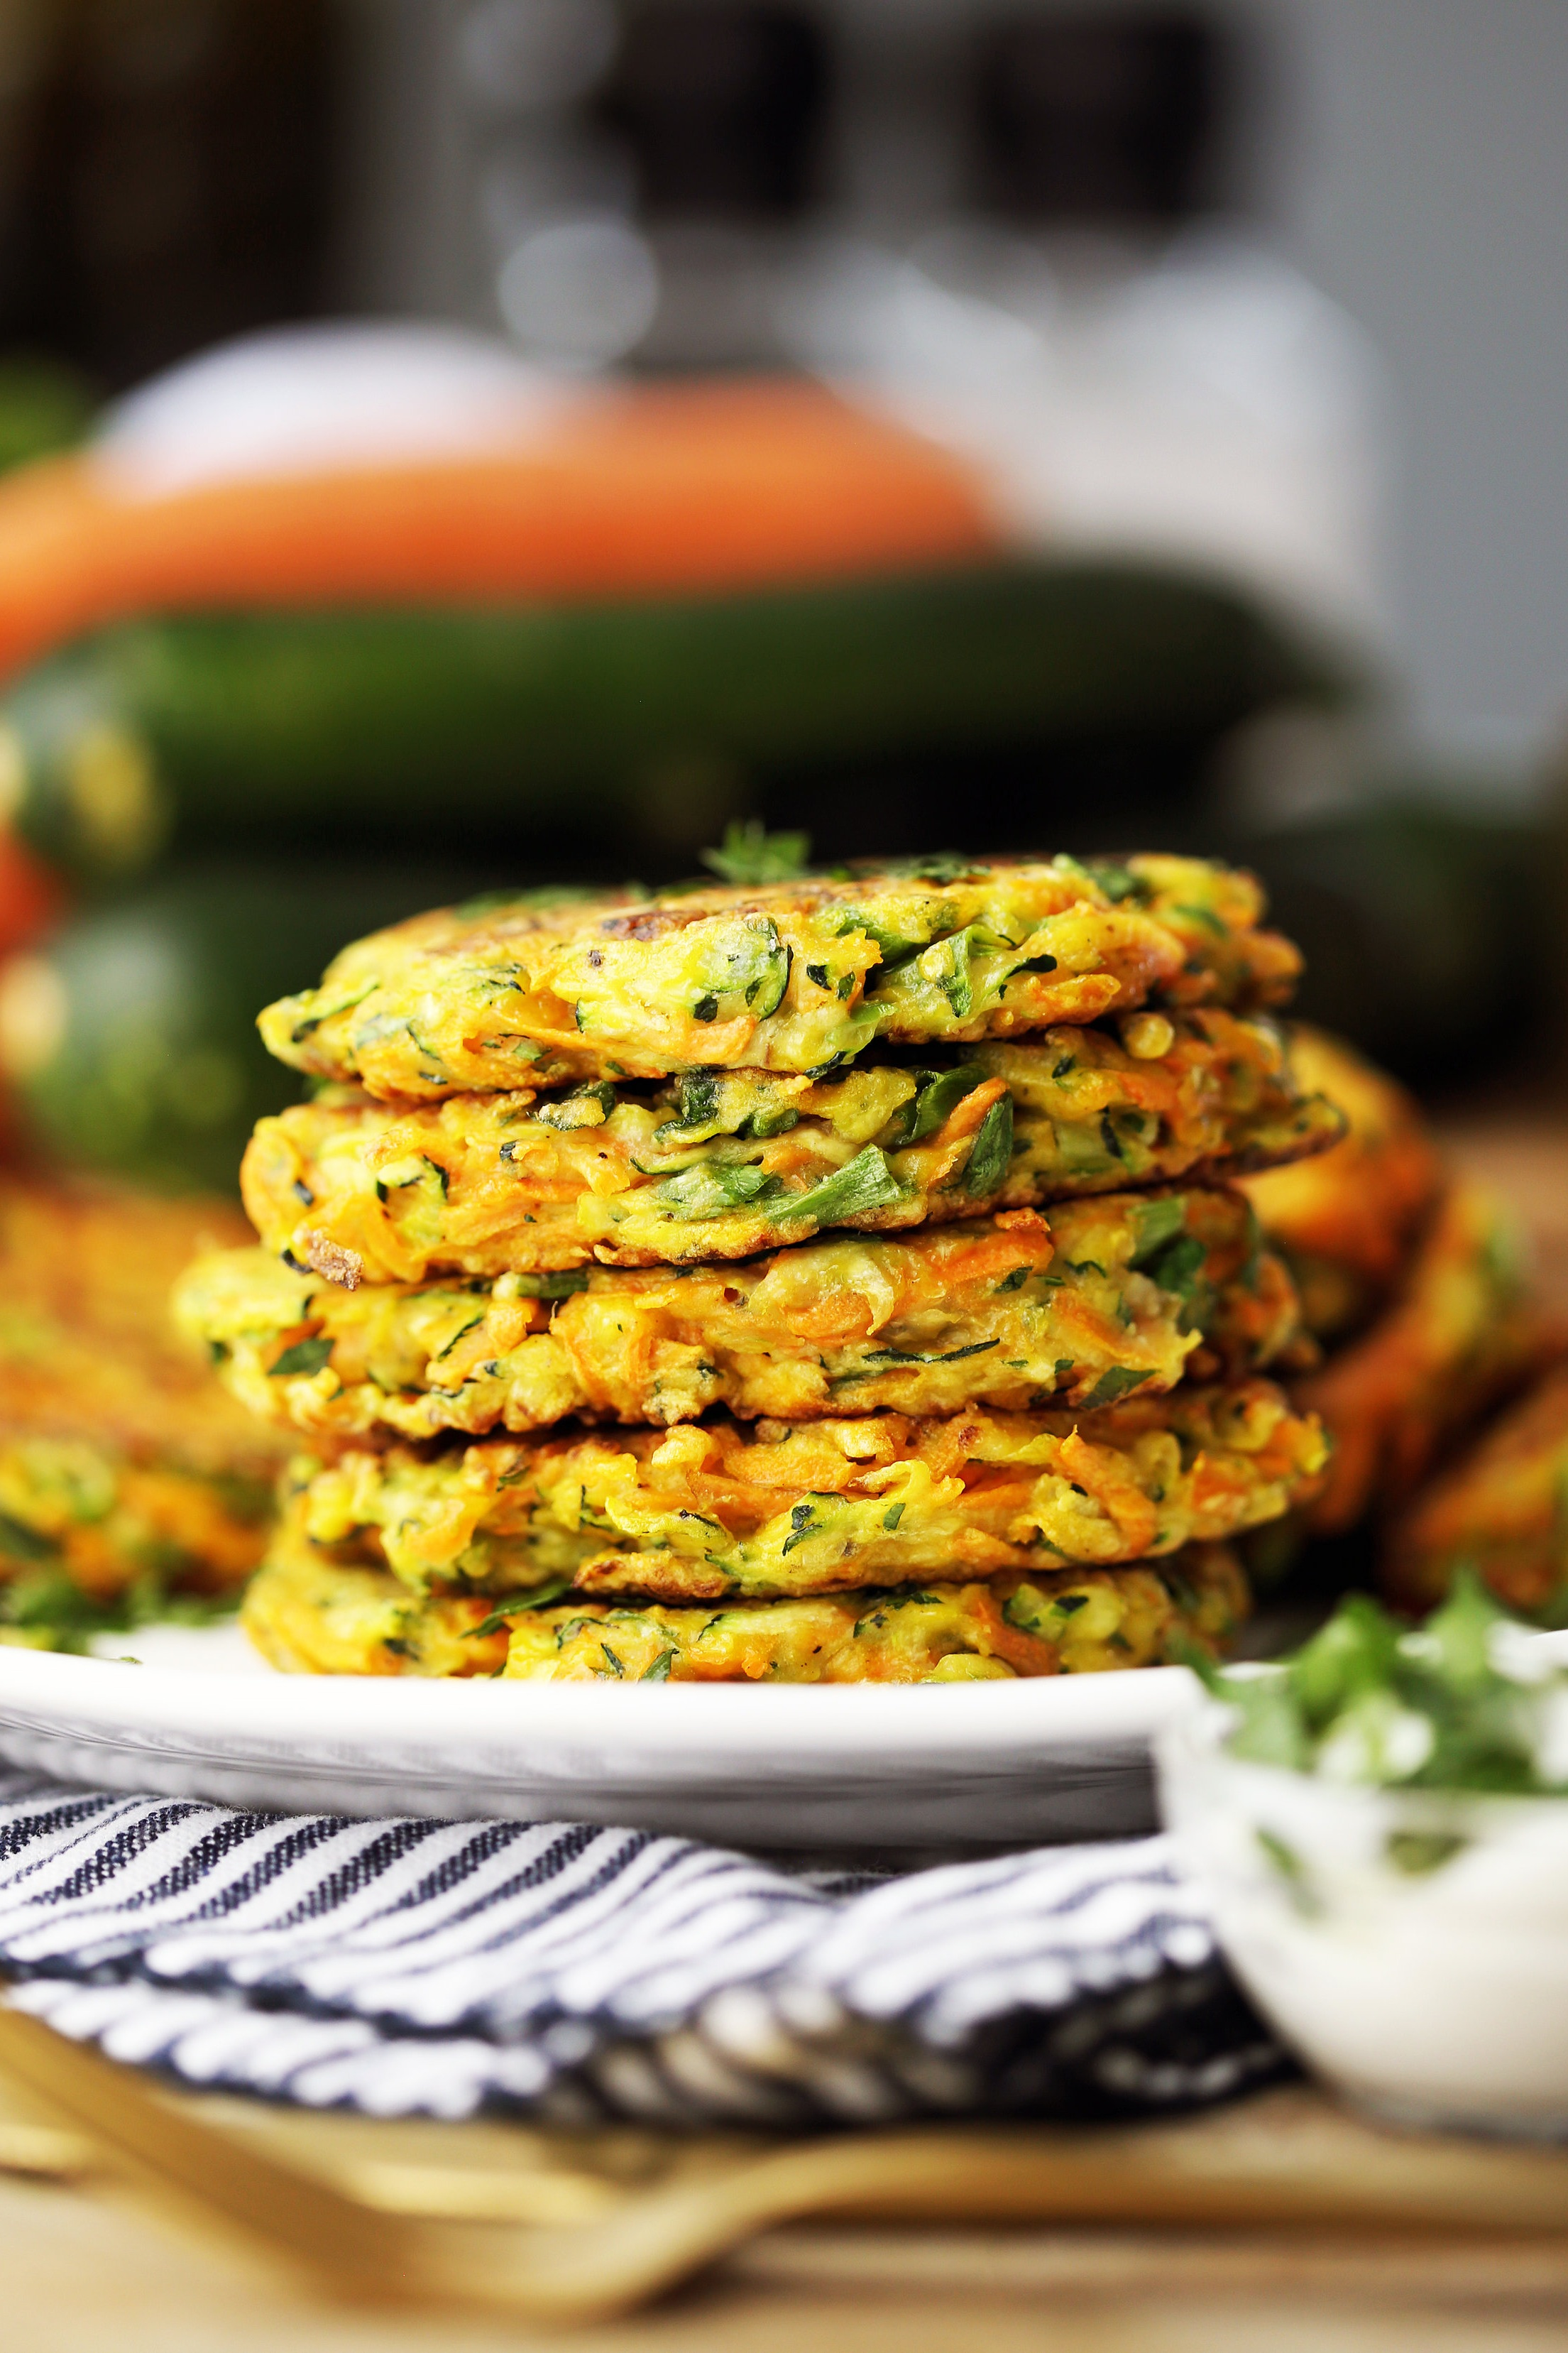 Five zucchini carrot pancakes stacked on a white plate with plain Greek yogurt in a small glass bowl on the side.